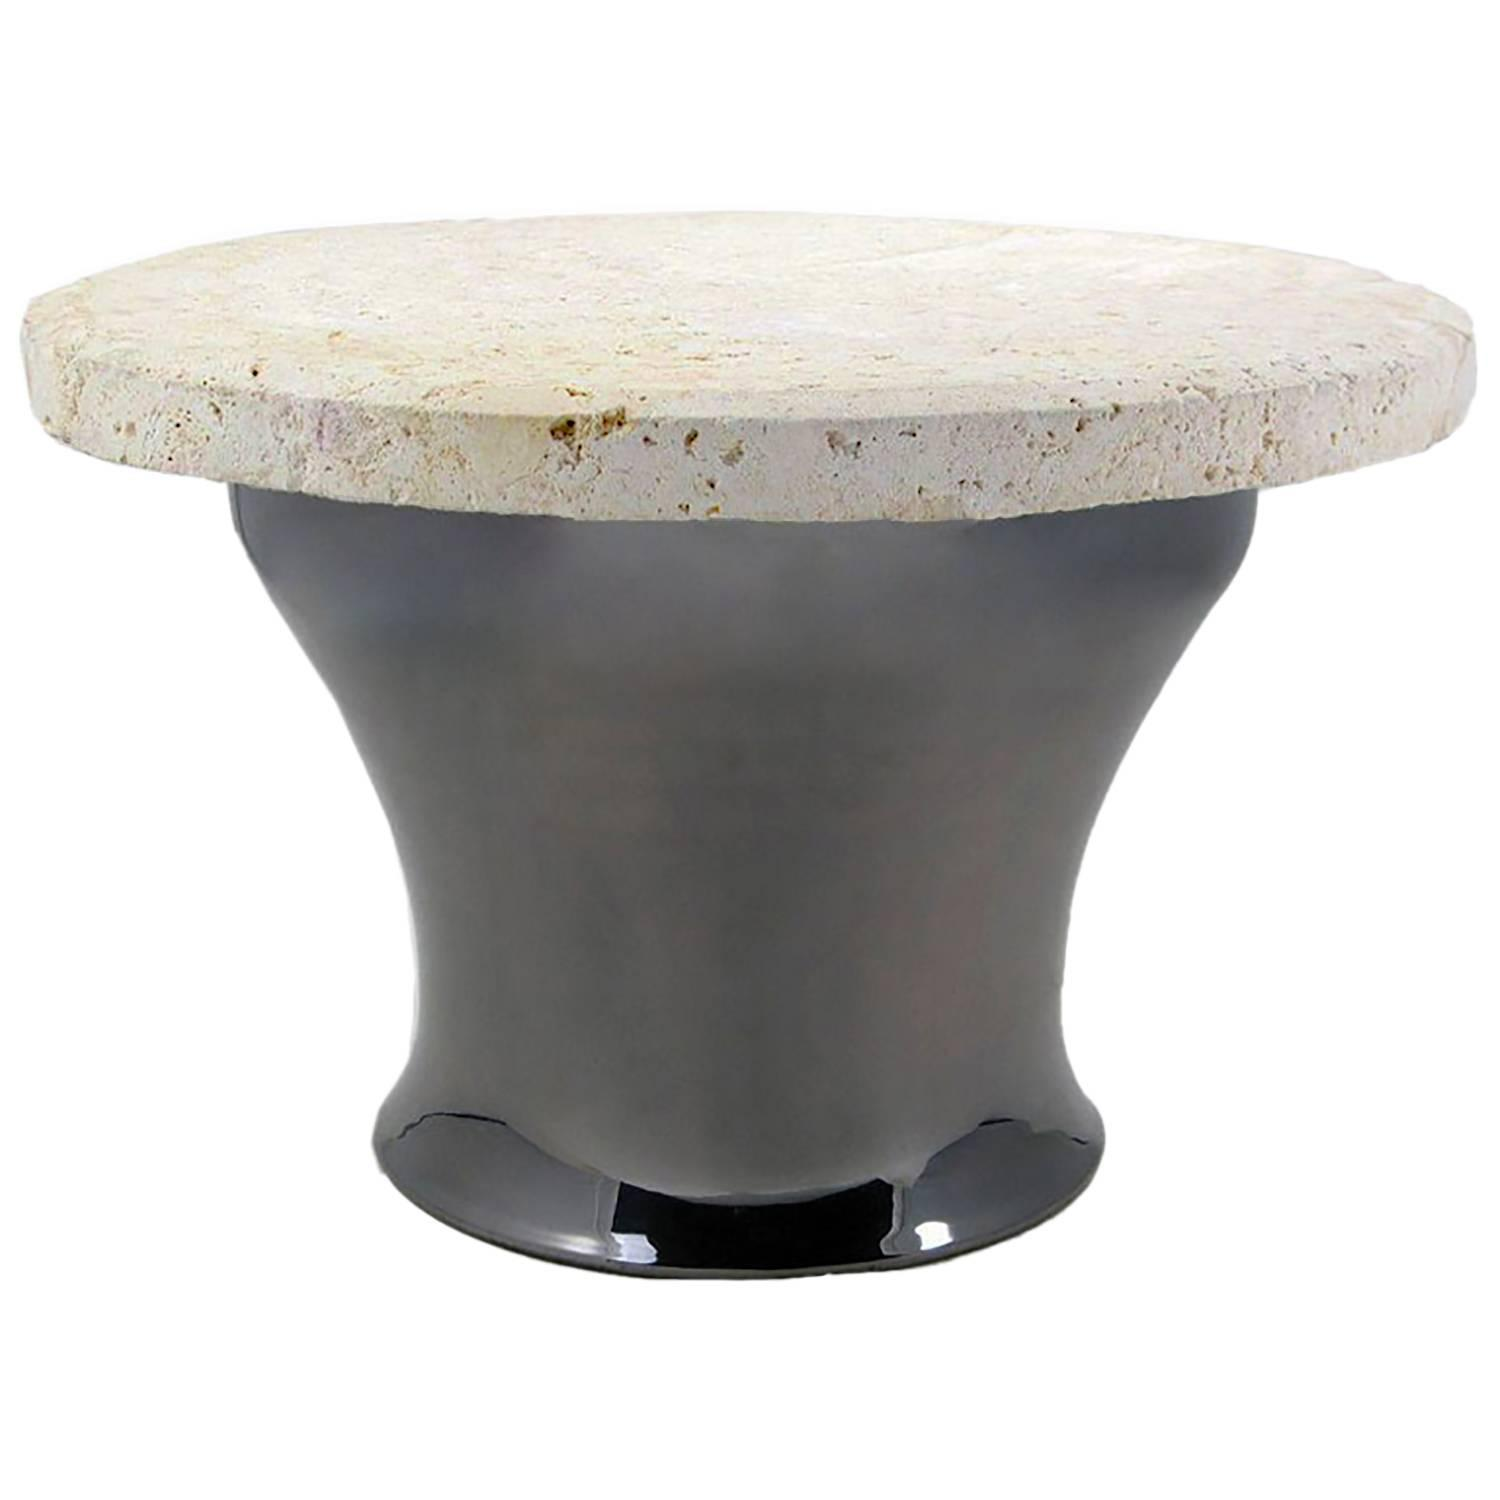 fantastic cast bronze rain drum table xxx master tibetan accent contemporary glass end tables office side kitchen dining sets outdoor lamps ashley chairside metal target sofa